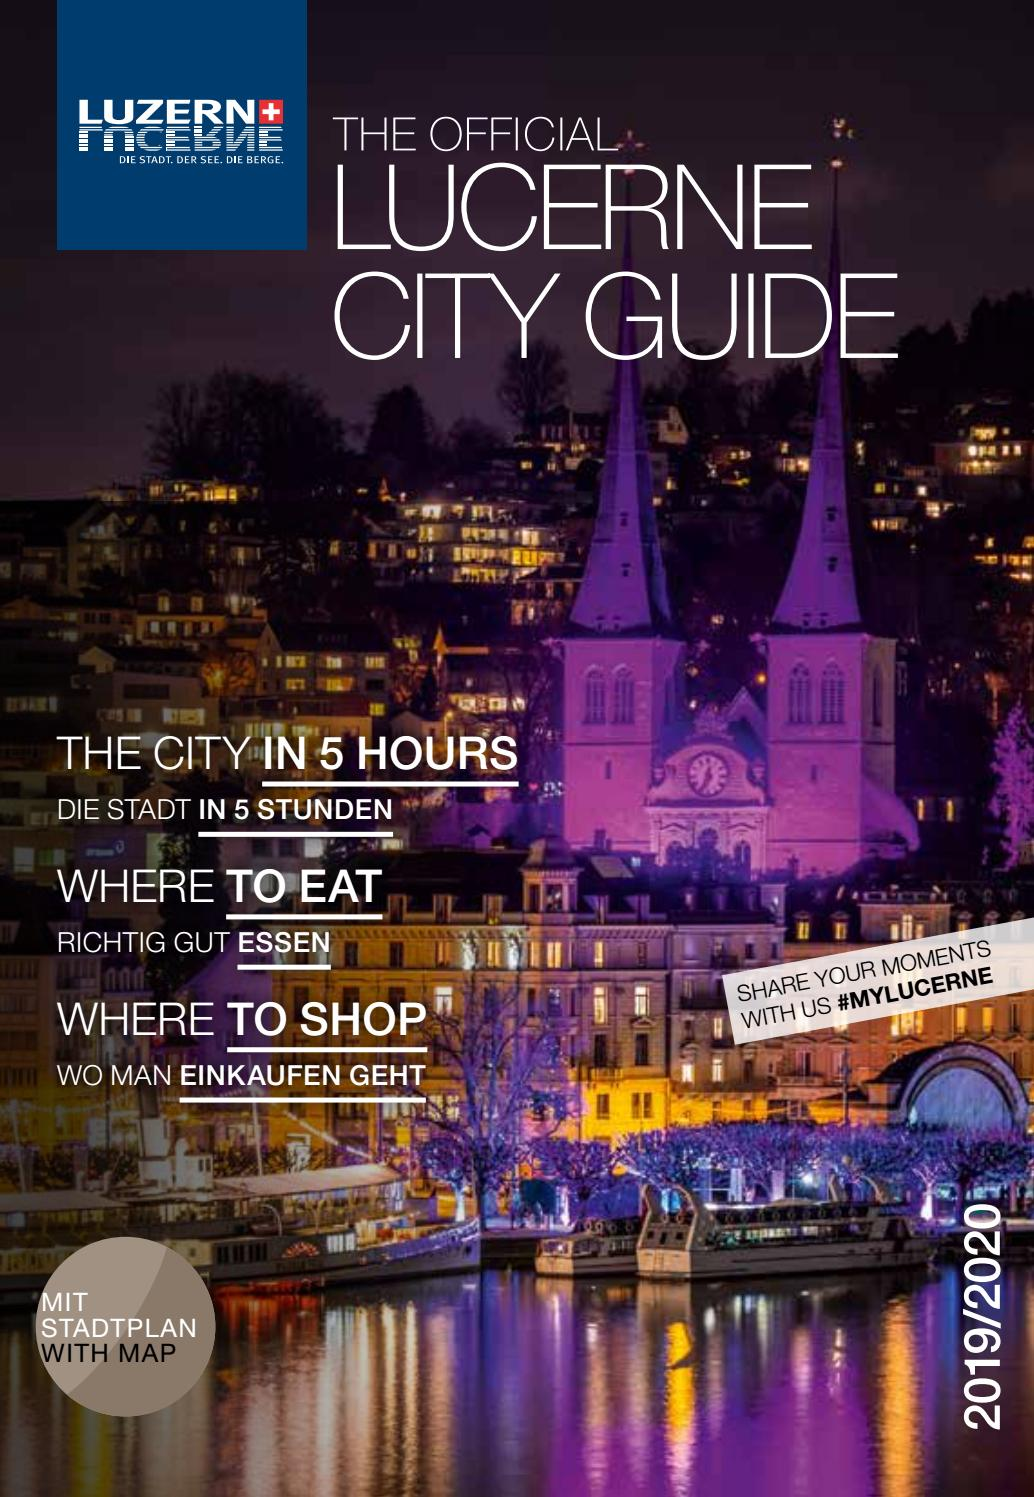 Official Lucerne City Guide Winter 2019 20 By Ba Media Gmbh